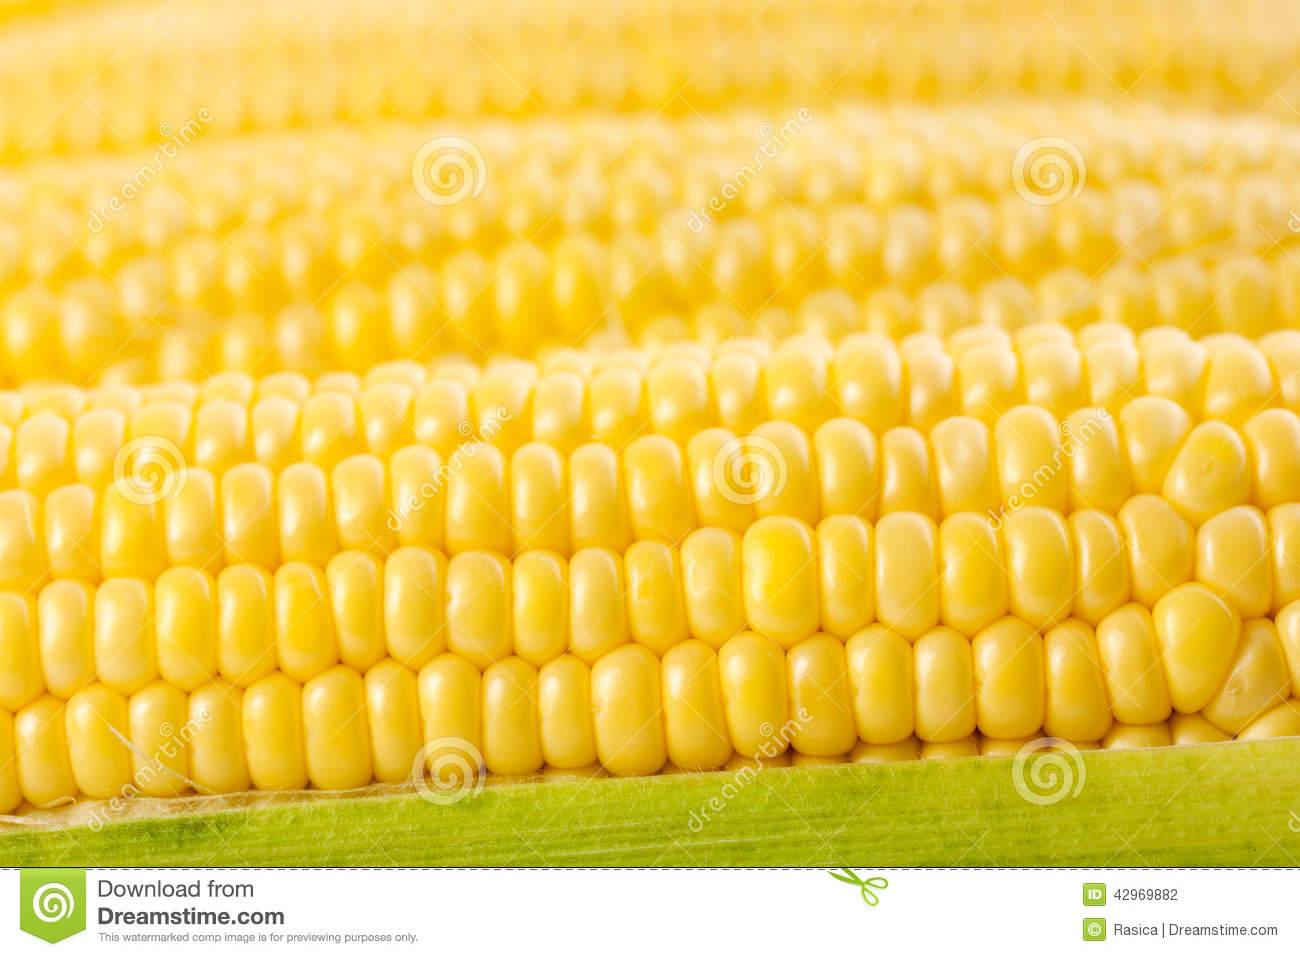 how to eat raw corn on the cob